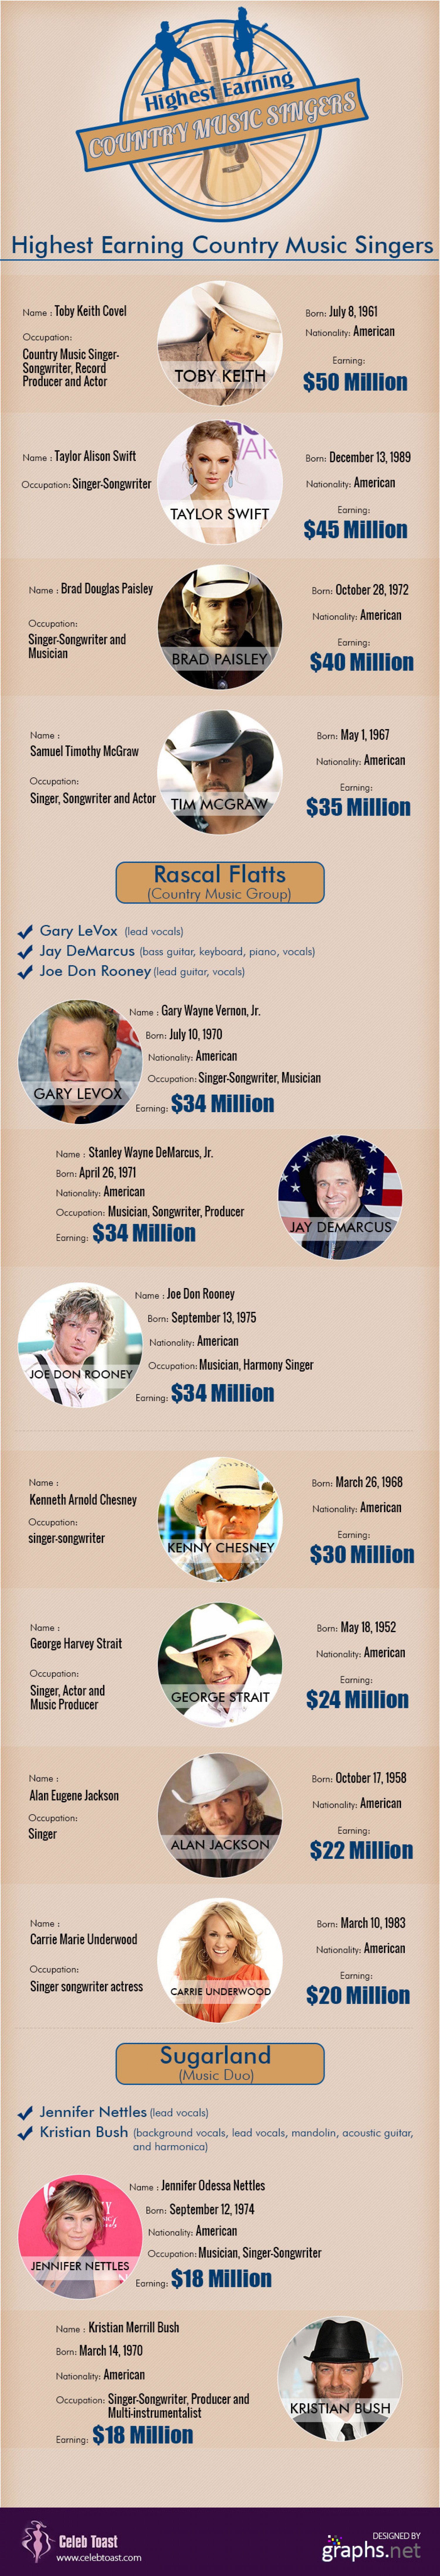 Highest earnings country music singers  Infographic